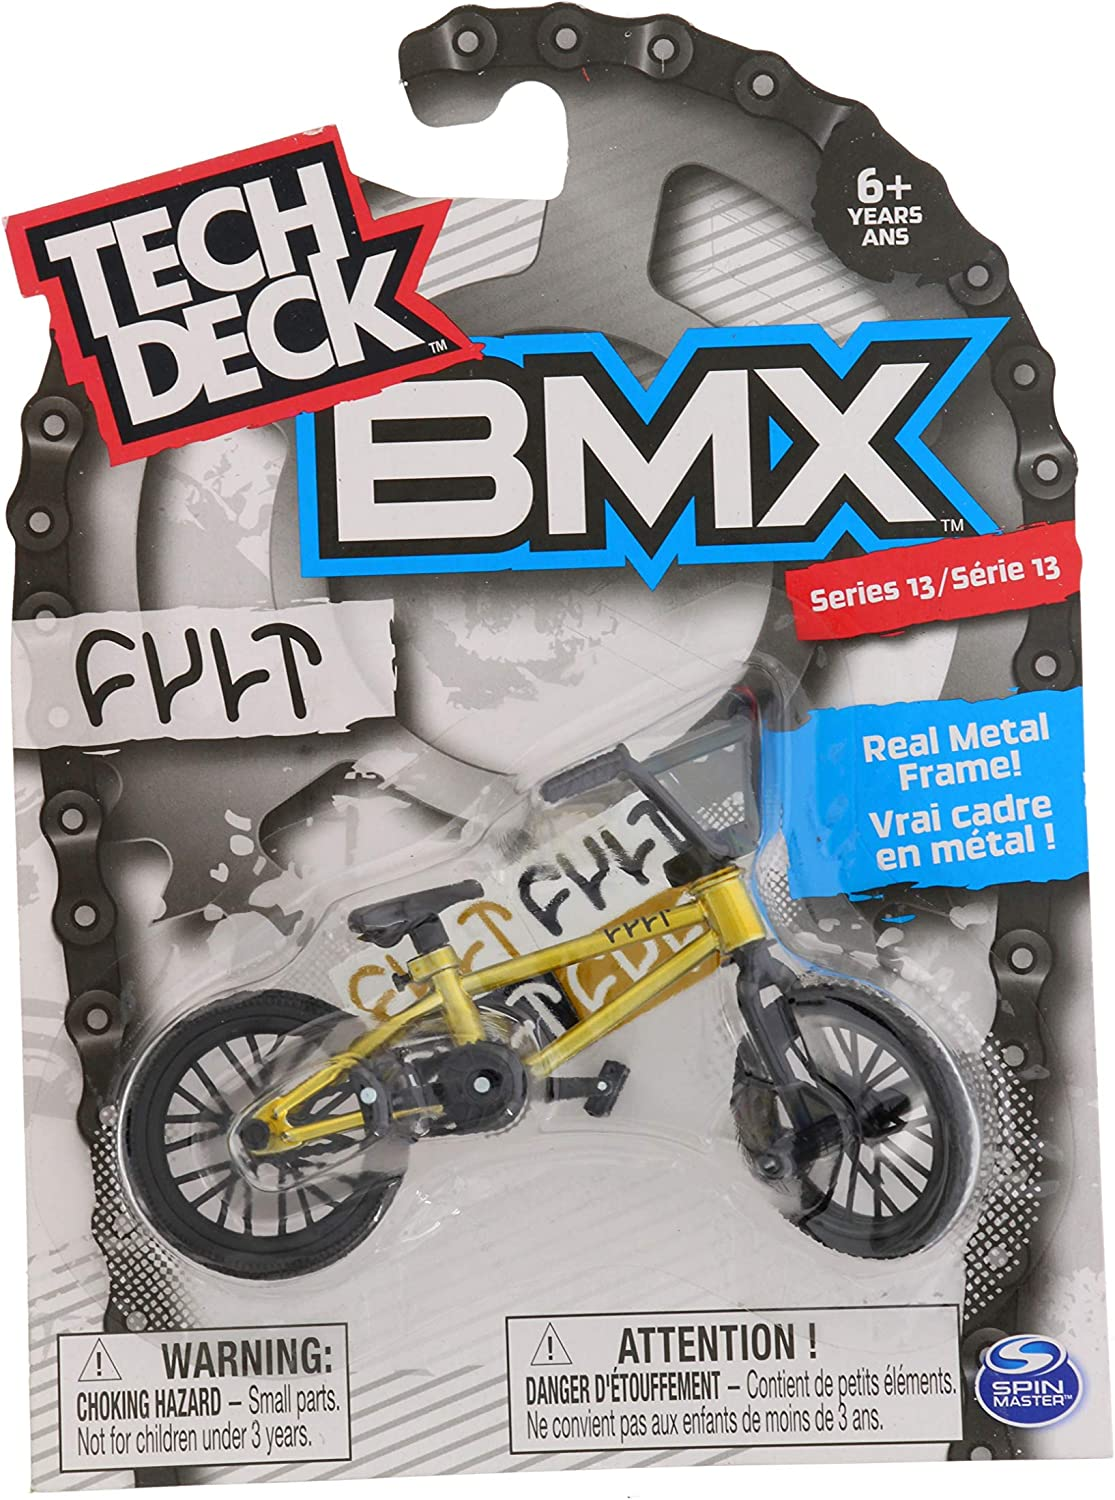 Flares Cult Spin Master BMX Finger Bike Series 13 and Moveable Tech Deck Parts for Flick Tricks Replica Tech Deck Bike with Real Metal Frame Gold Graphics Grinds and Finger Bike Games